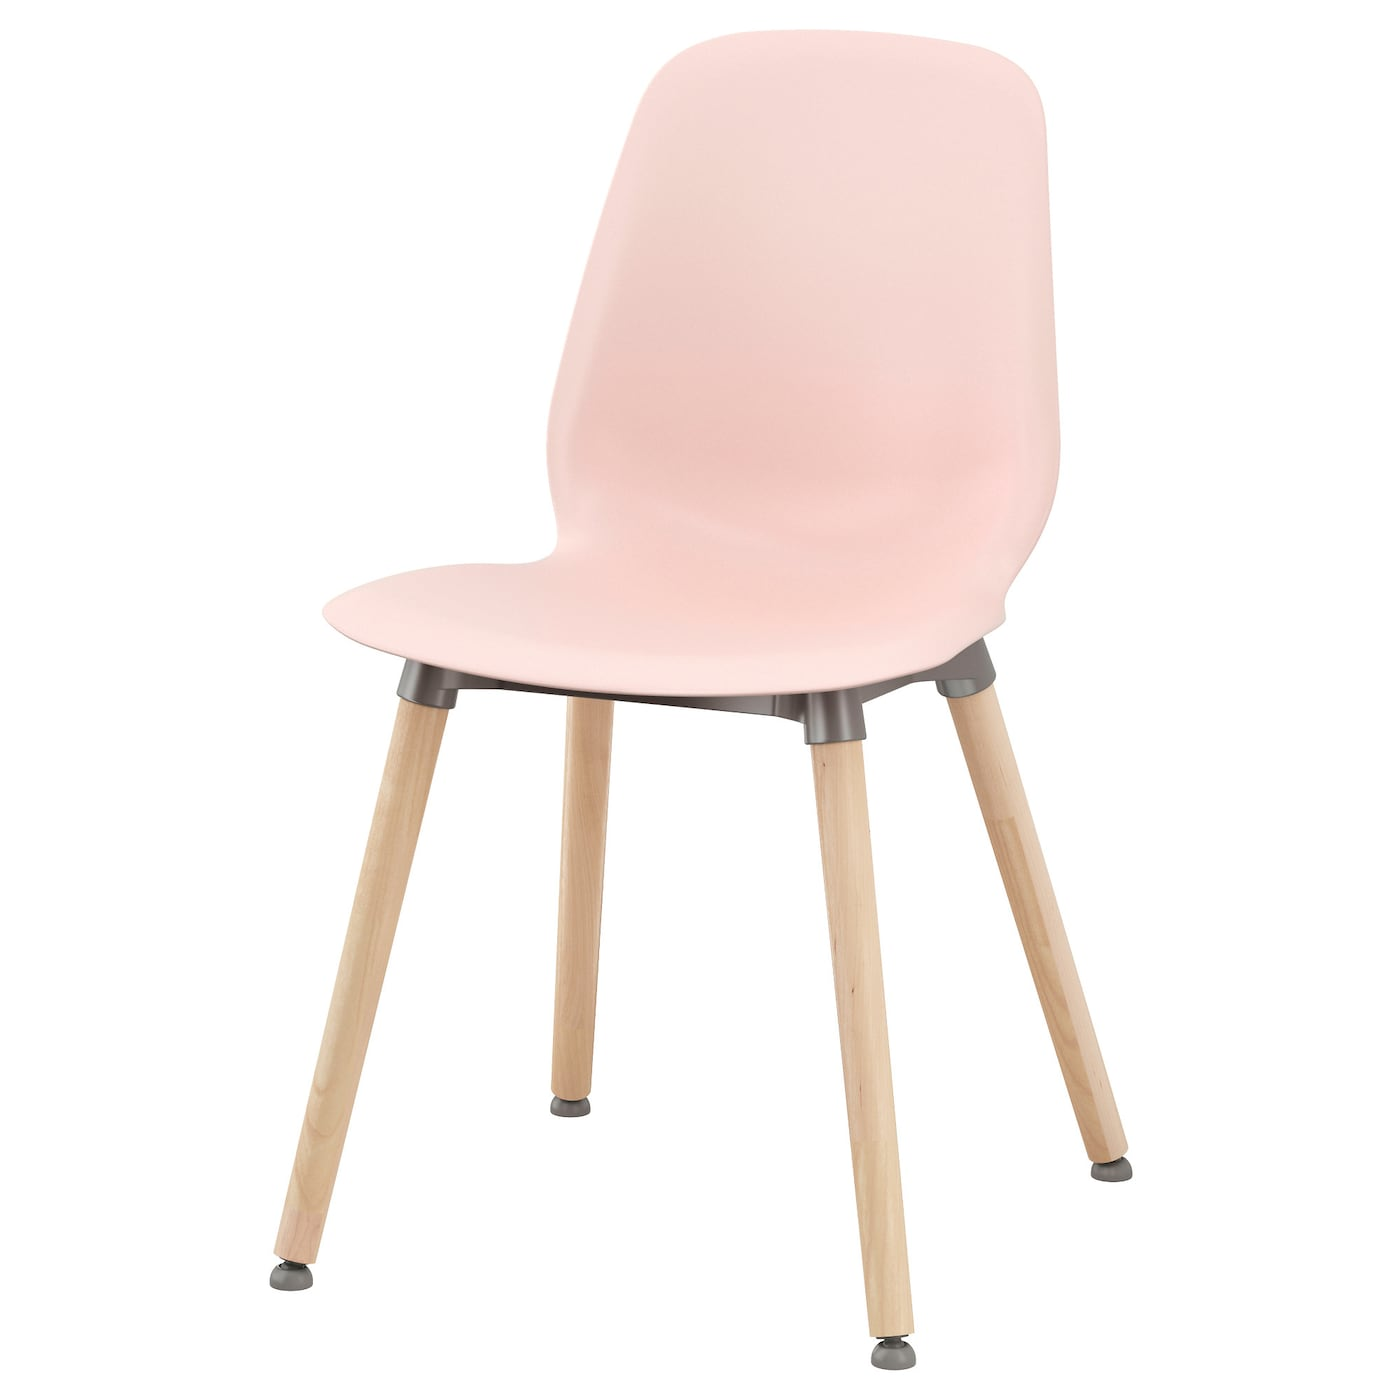 Leifarne chair pink ernfrid birch ikea for Table et chaise ikea